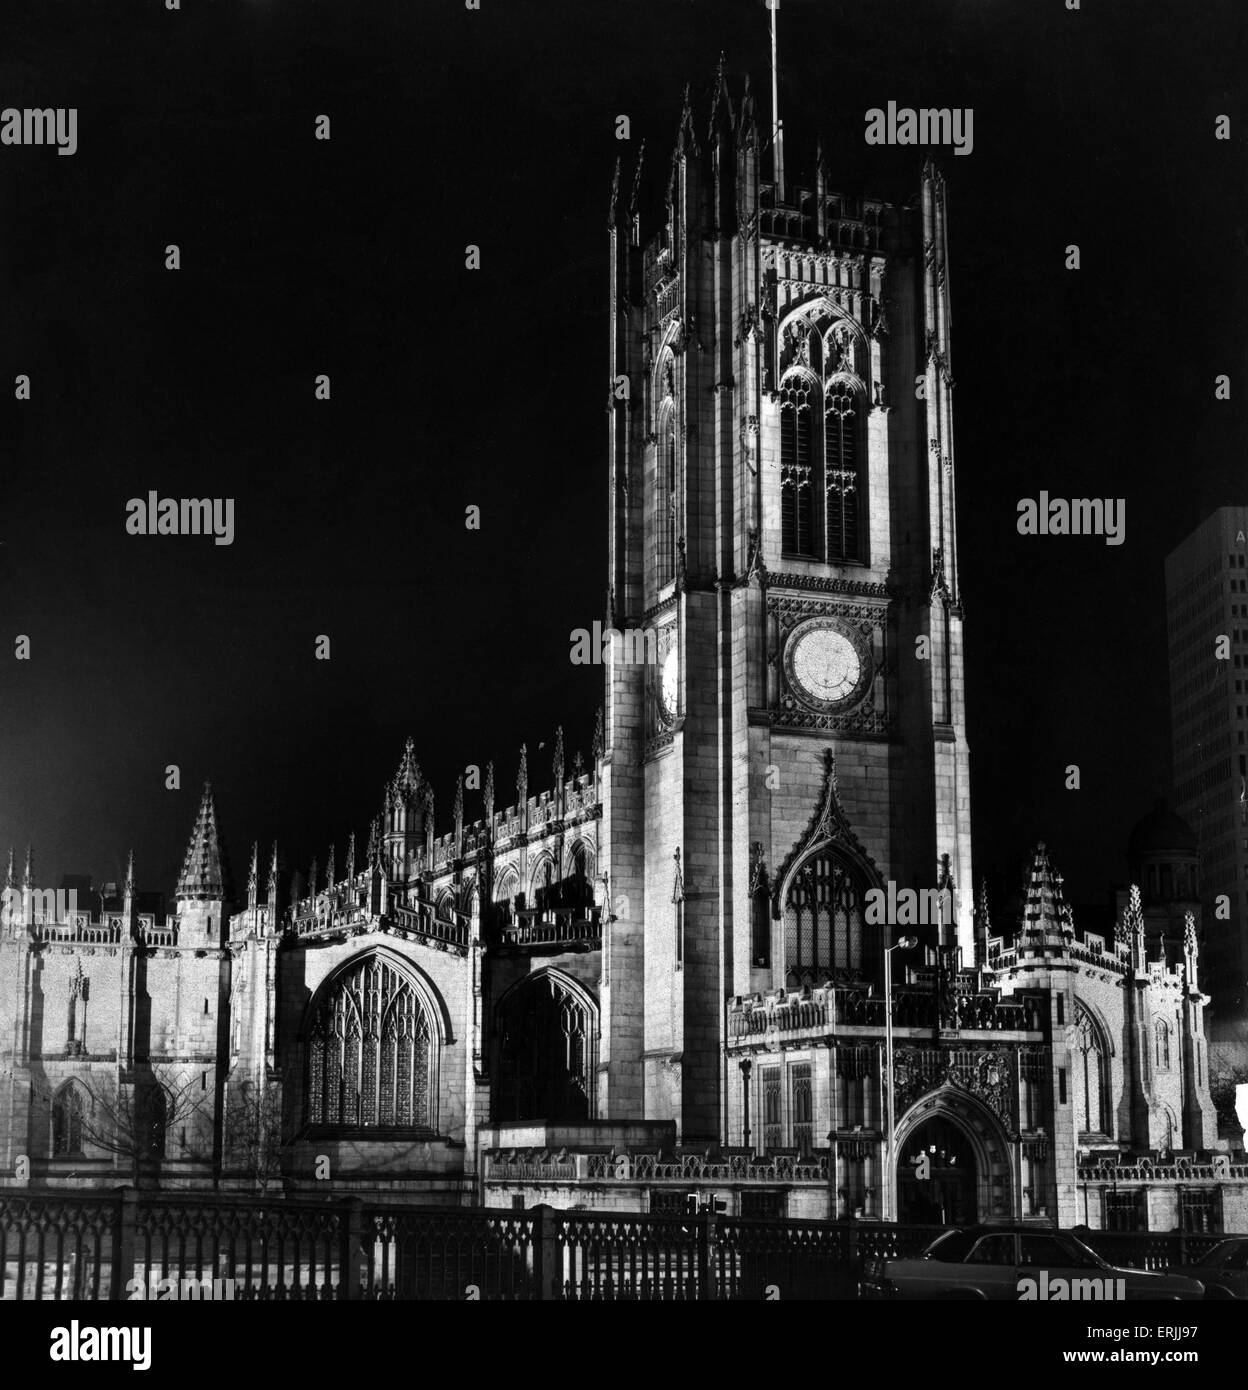 New floodlighting at Manchester Cathedral, Circa 1960. Manchester Cathedral is a medieval church on Victoria Street - Stock Image